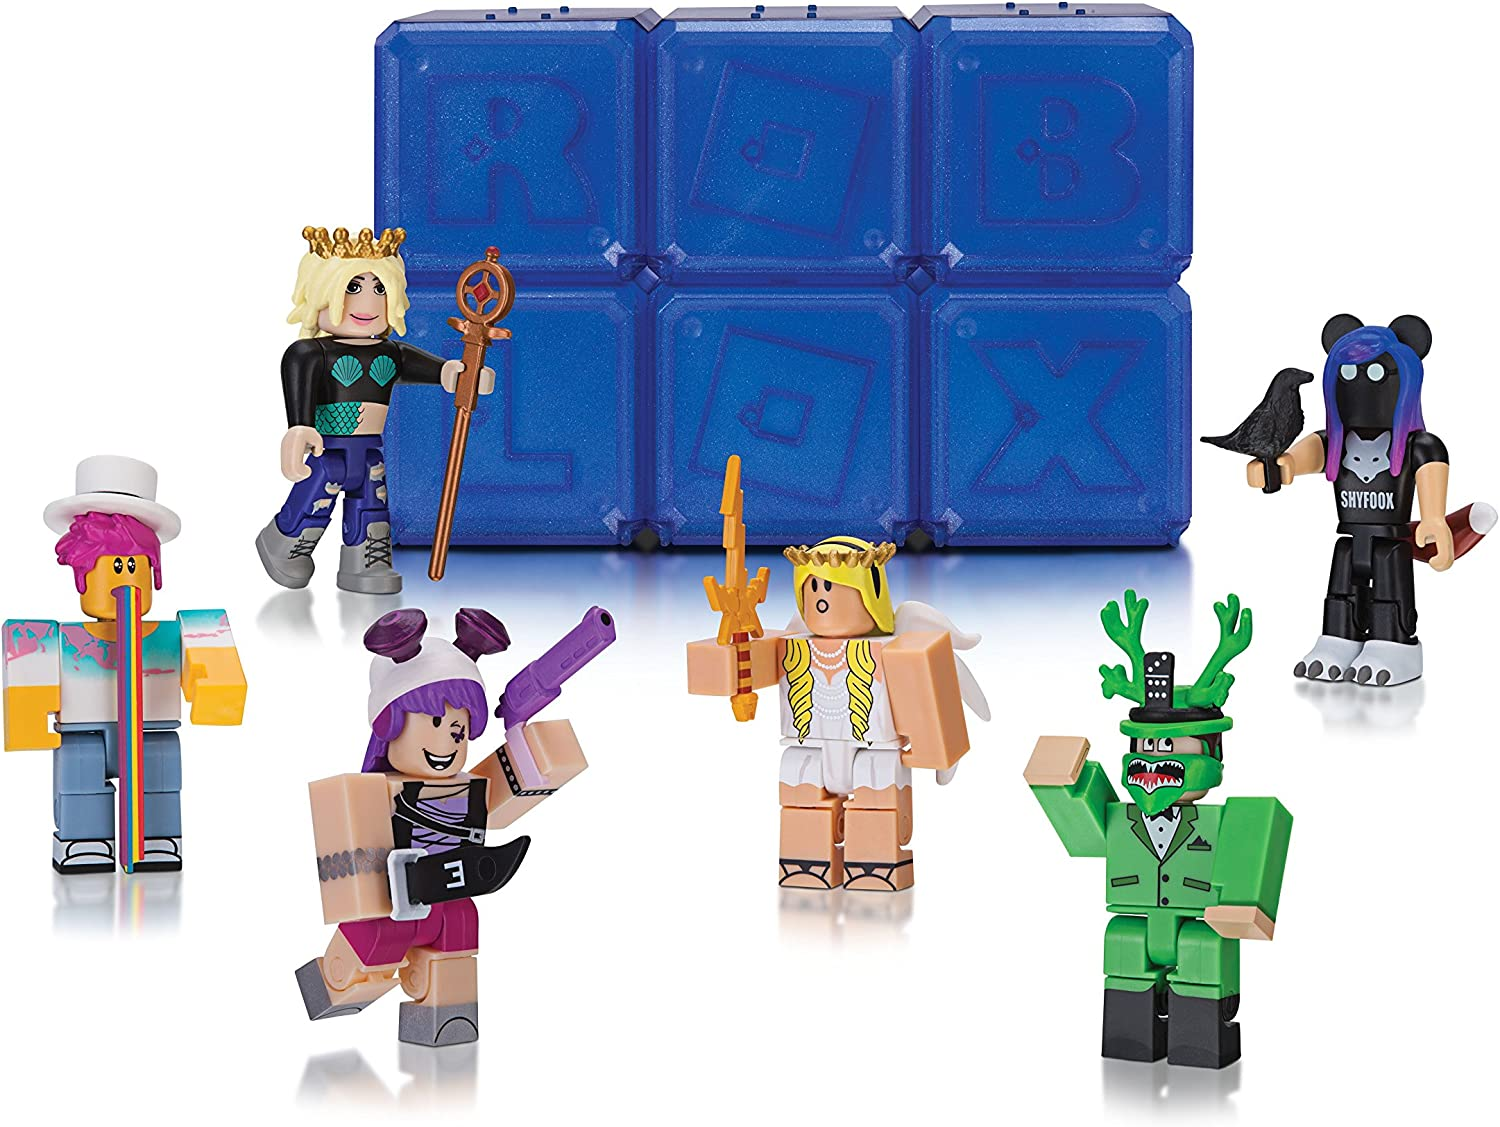 Roblox Celebrity Mystery Figure Series 2 Polybag Of 6 Action Figures - roblox figure series 2 mini figure with unused online code